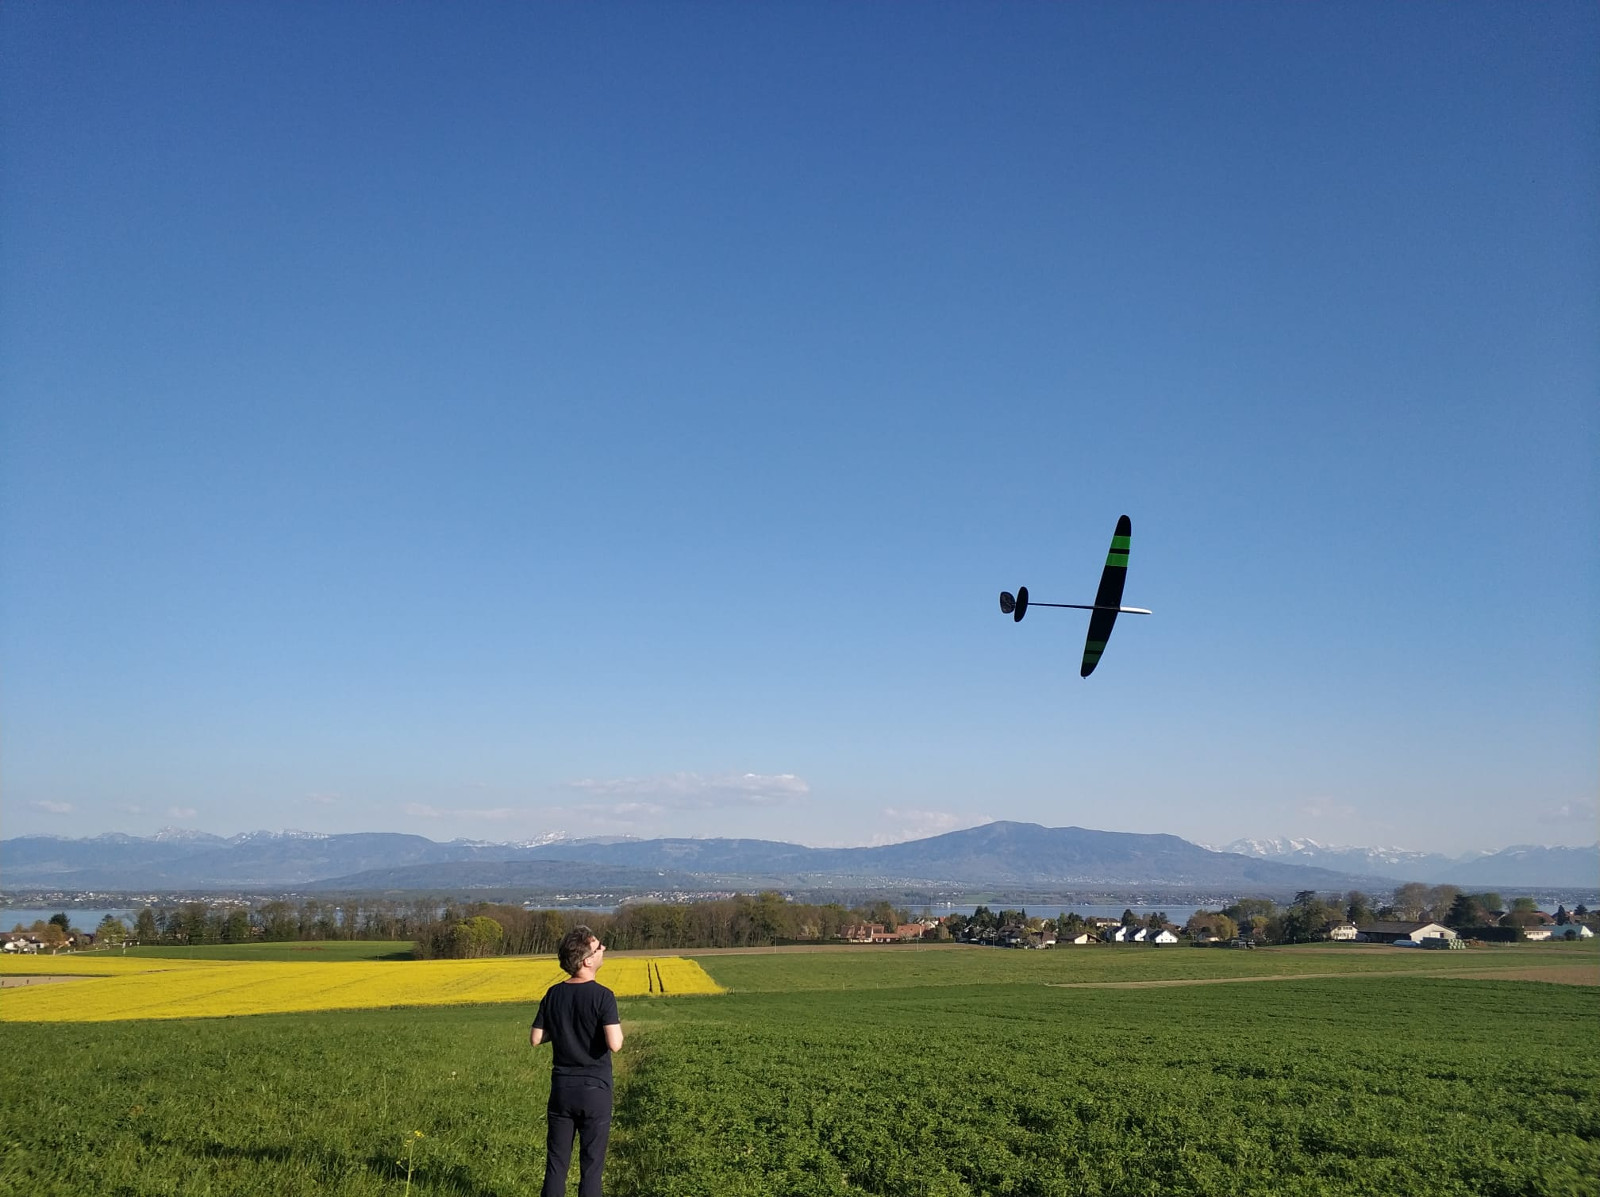 kite_1st_flight.jpg